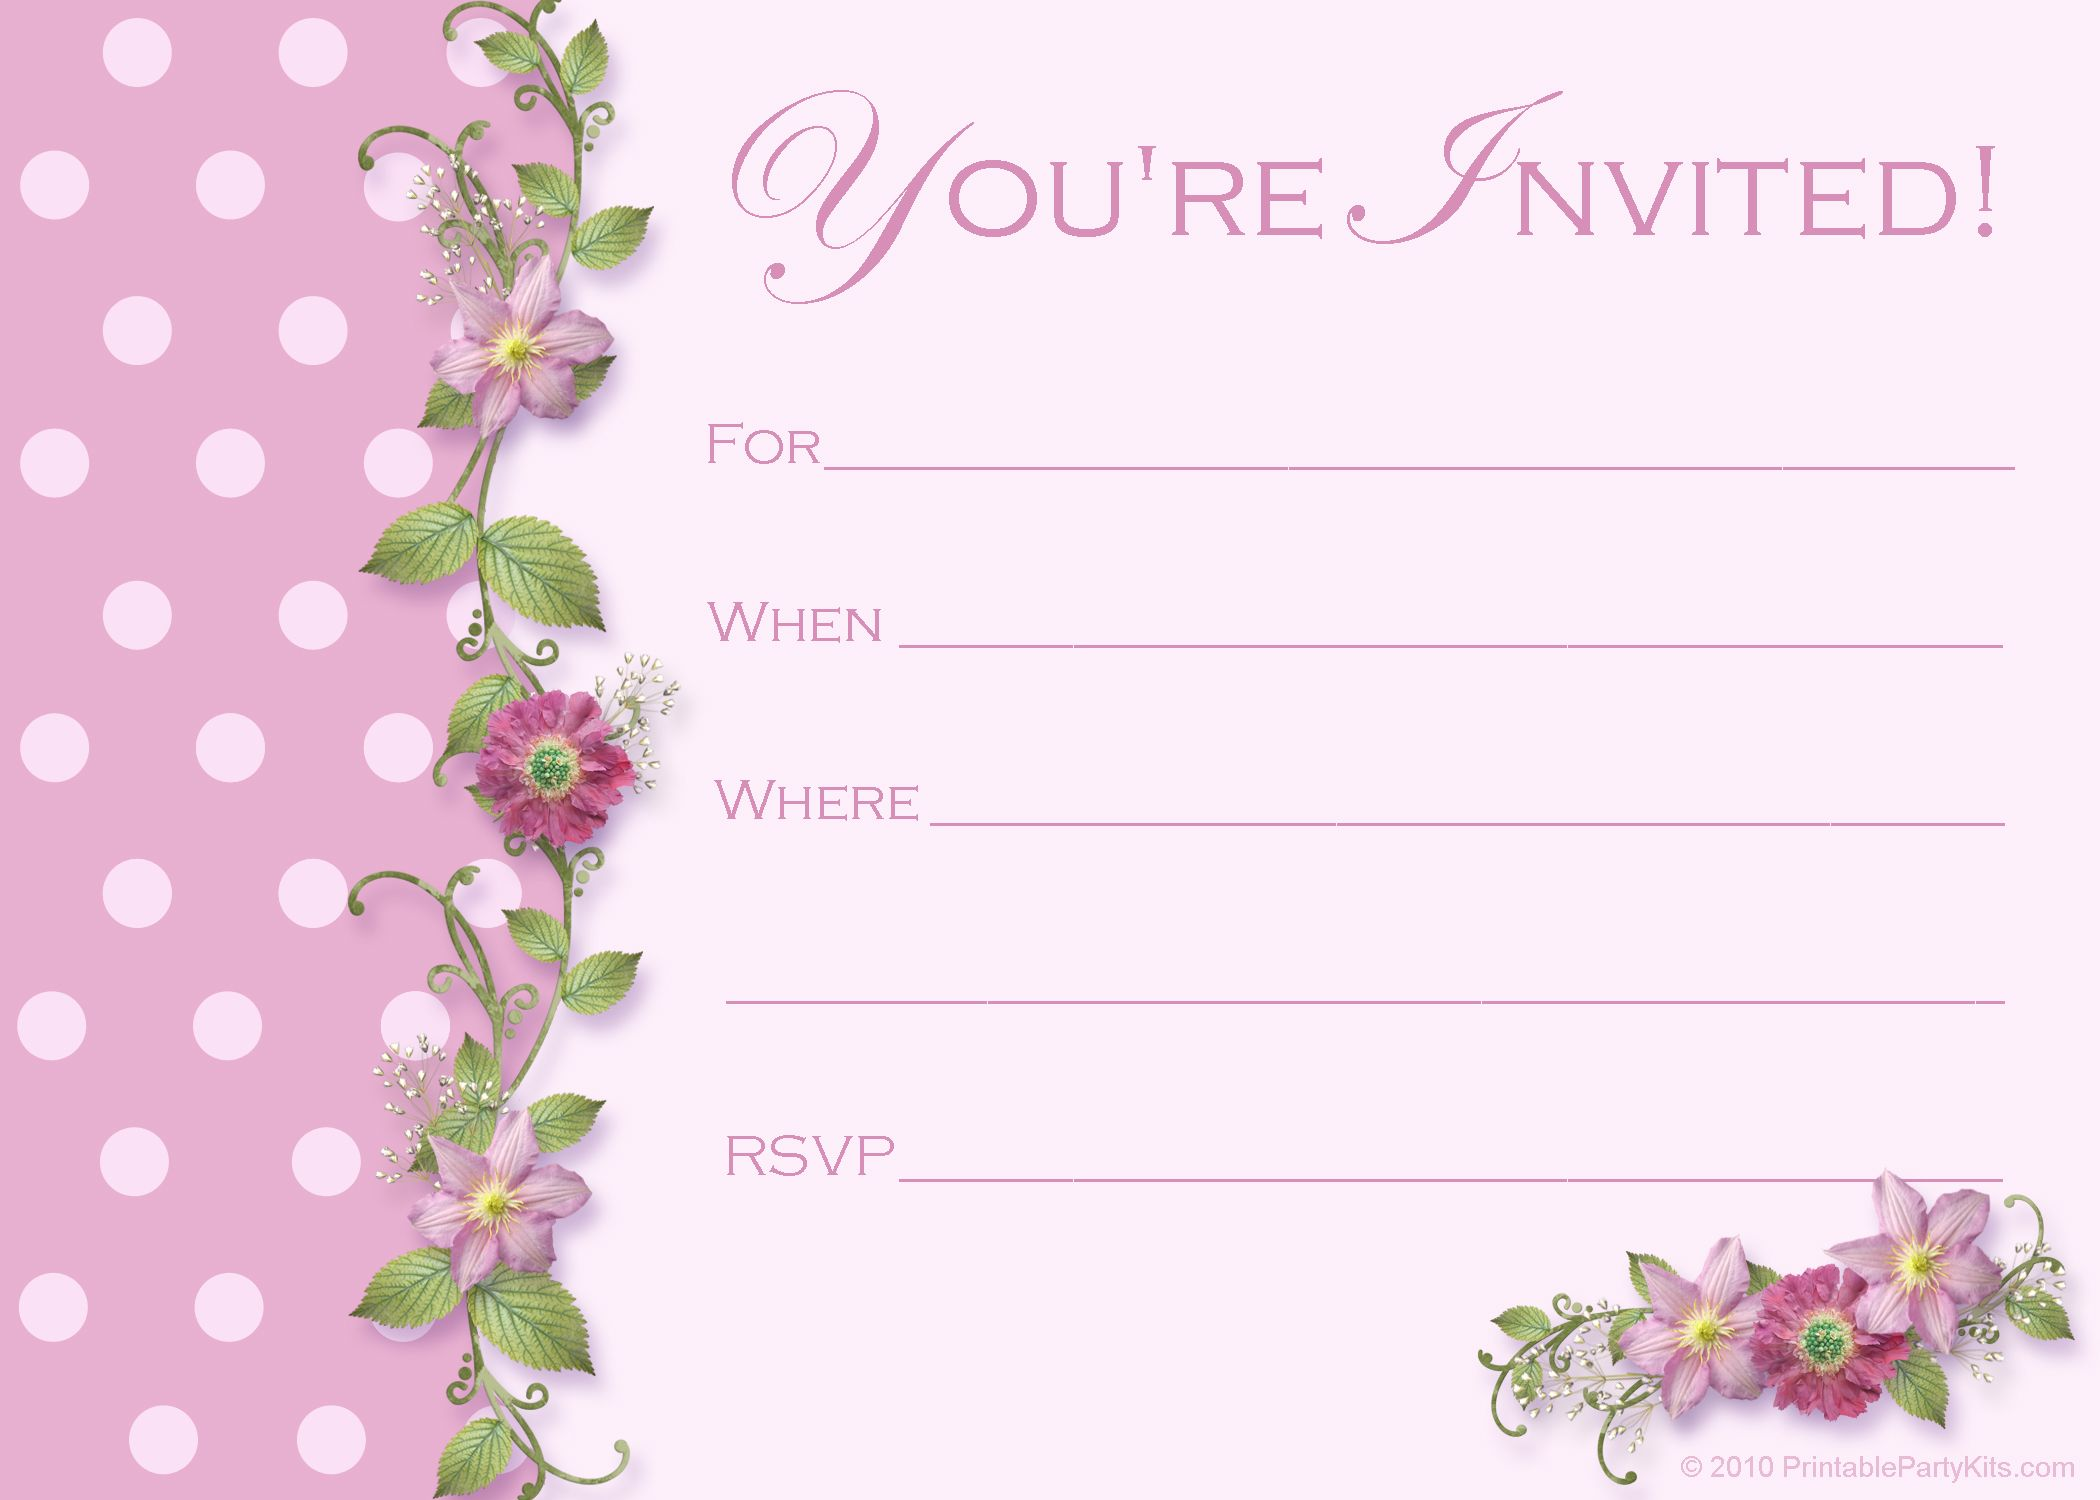 Image for Blank Birthday Invitations Templates | parties, weddings ...